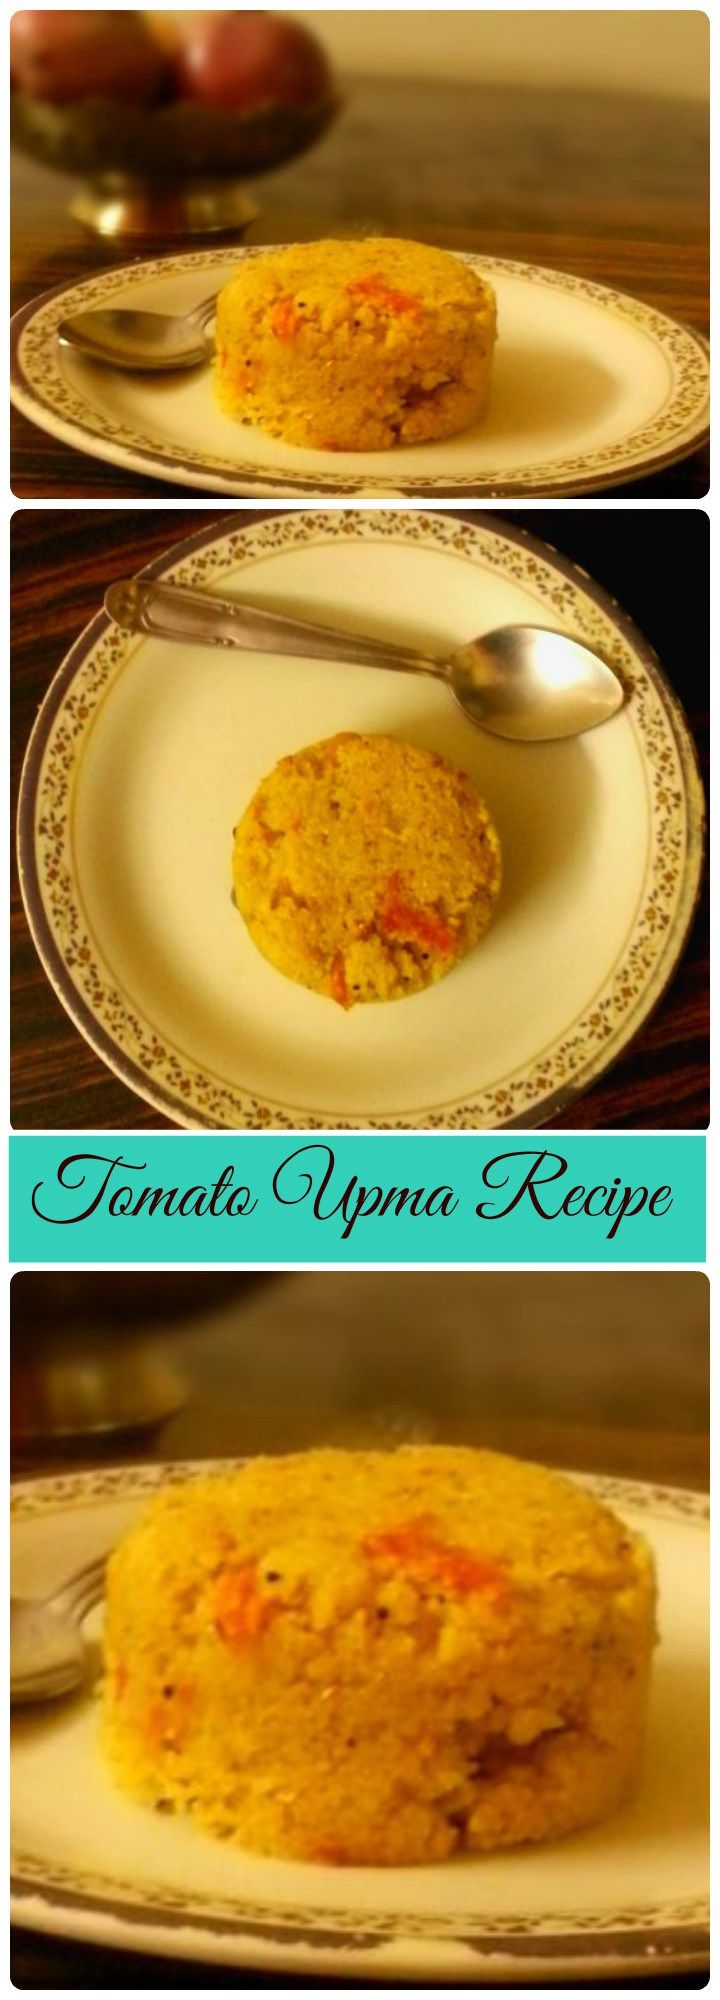 Tomato Upma Recipe is a colourful and a slight tangy version of regular Upma. Roasted Semolina is cooked in Tomato Gravy by adding water. Adding little bit more Turmeric makes this Tomato Upma Recipe Colourful.